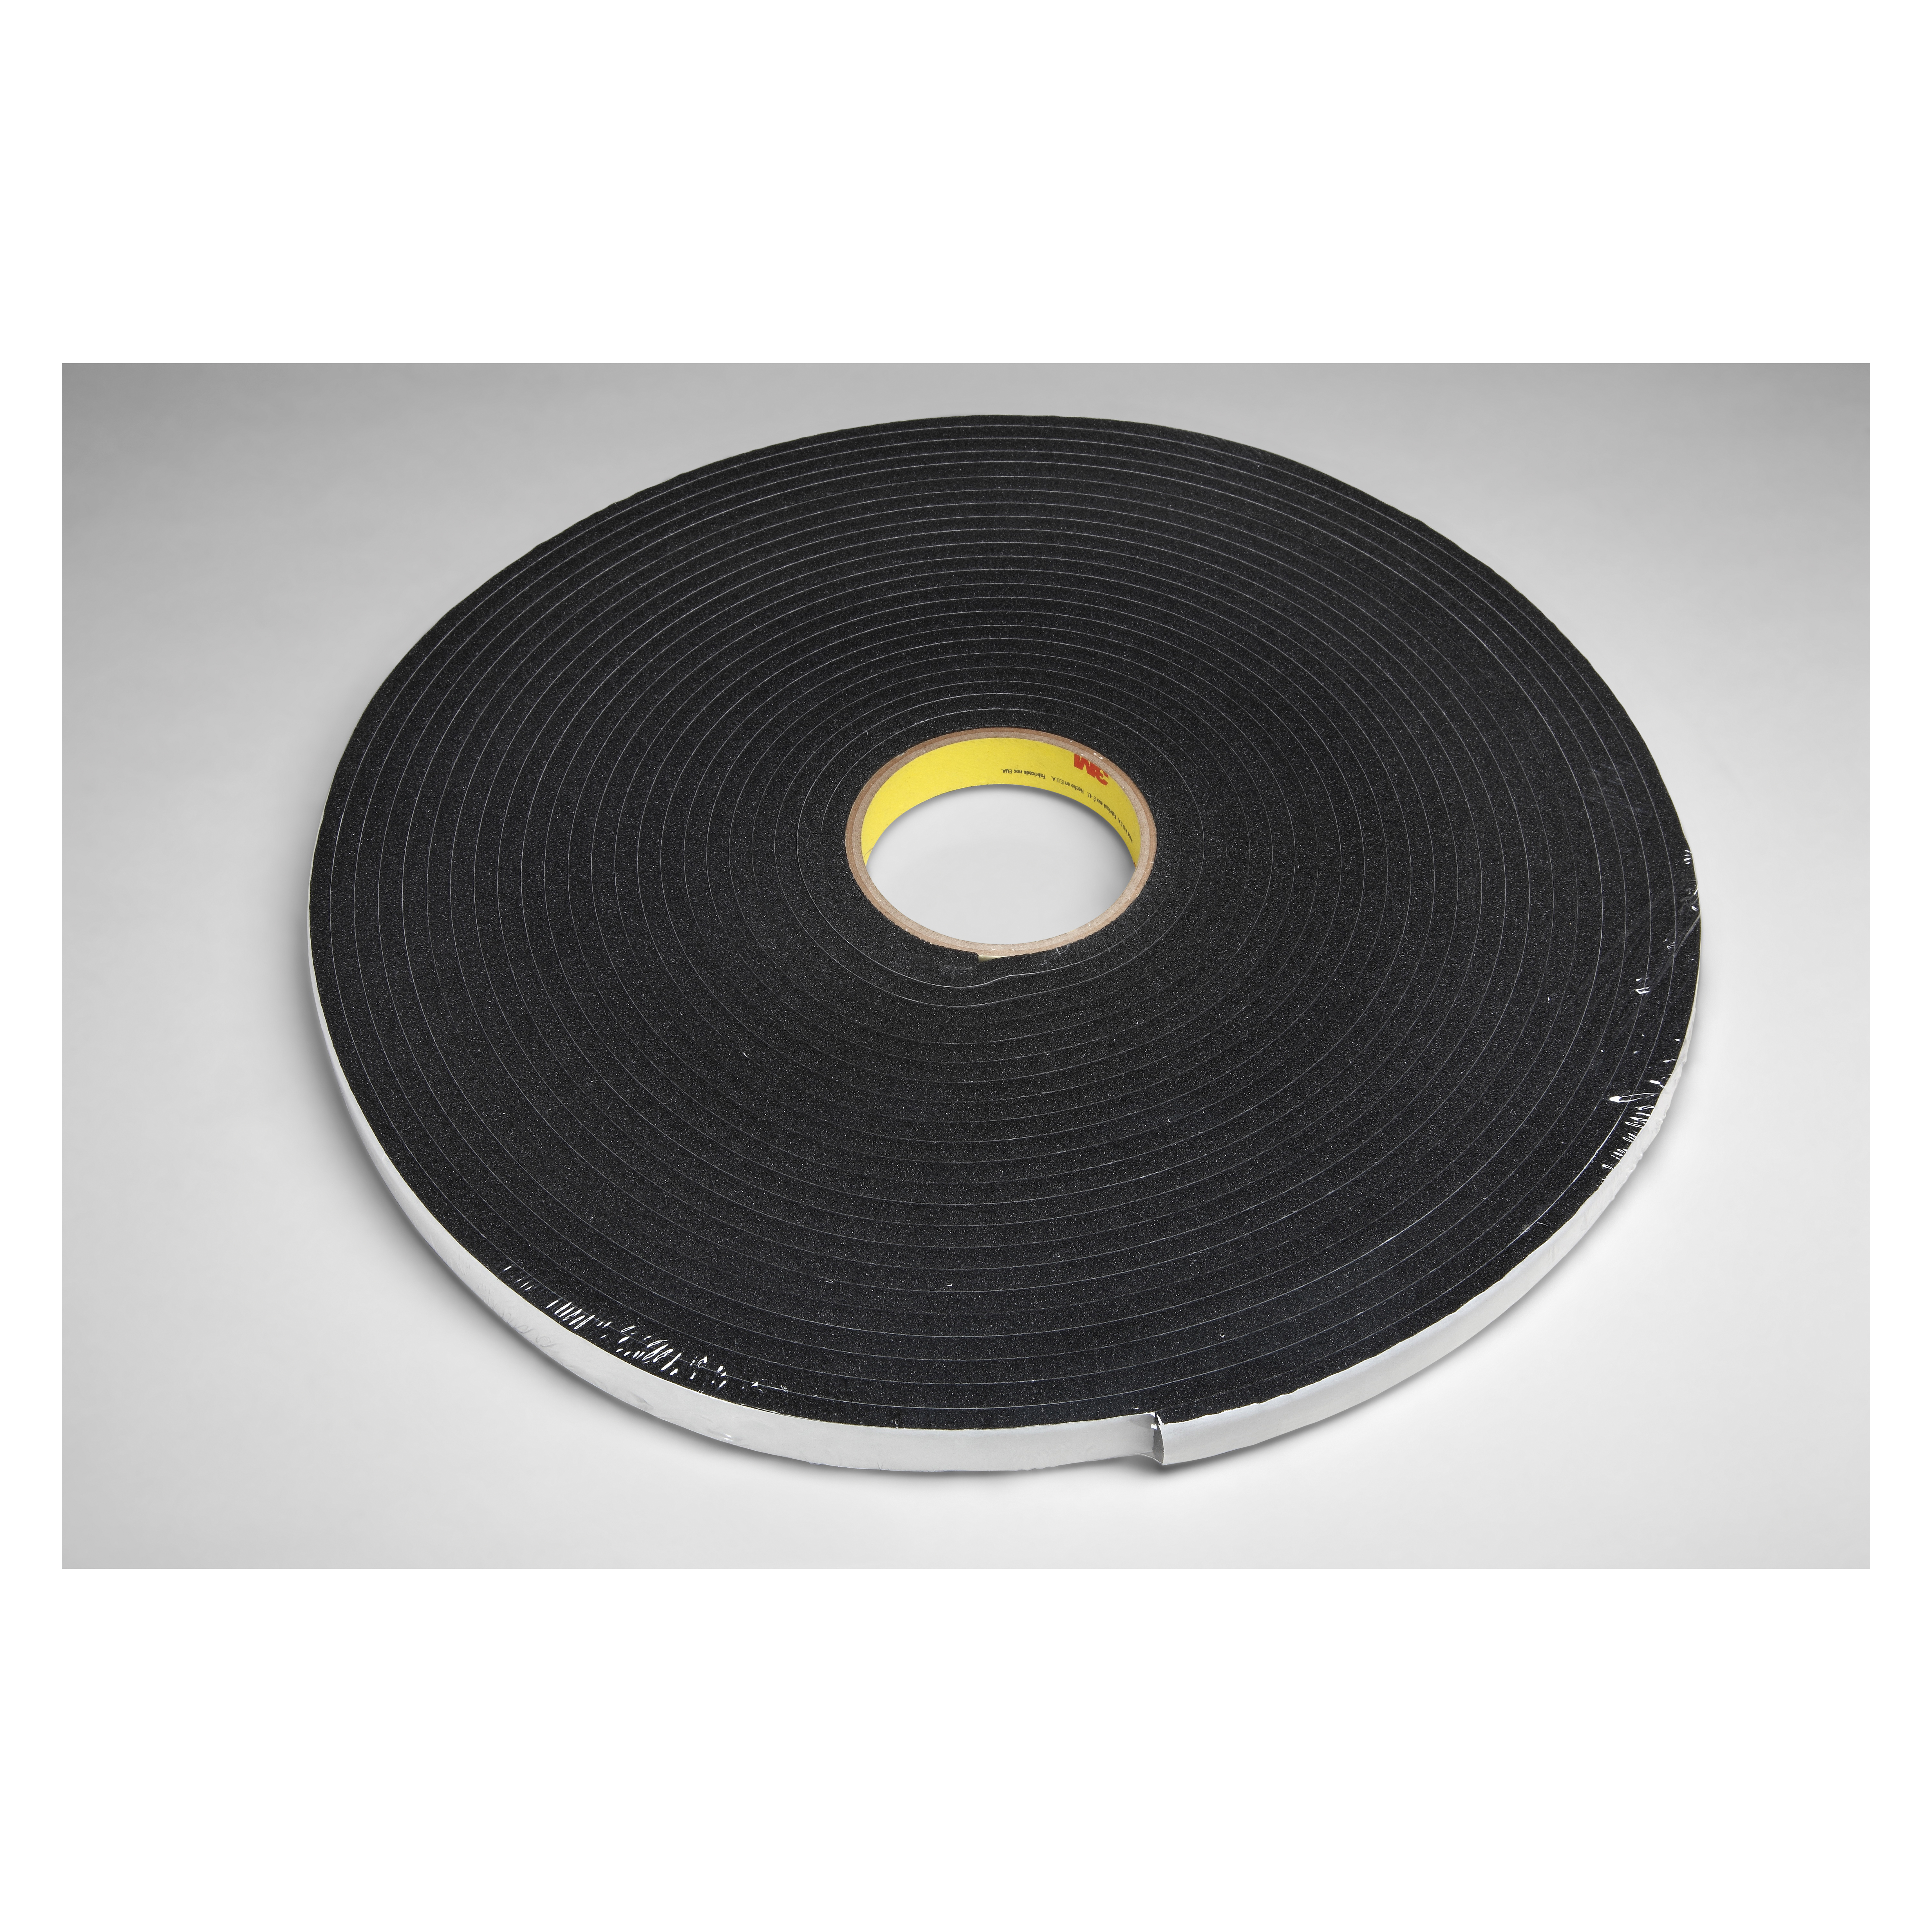 3M™ 021200-03318 Single Coated Foam Tape, 18 yd L x 1/2 in W, 250 mil THK, Acrylic Adhesive, Vinyl Foam Backing, Black